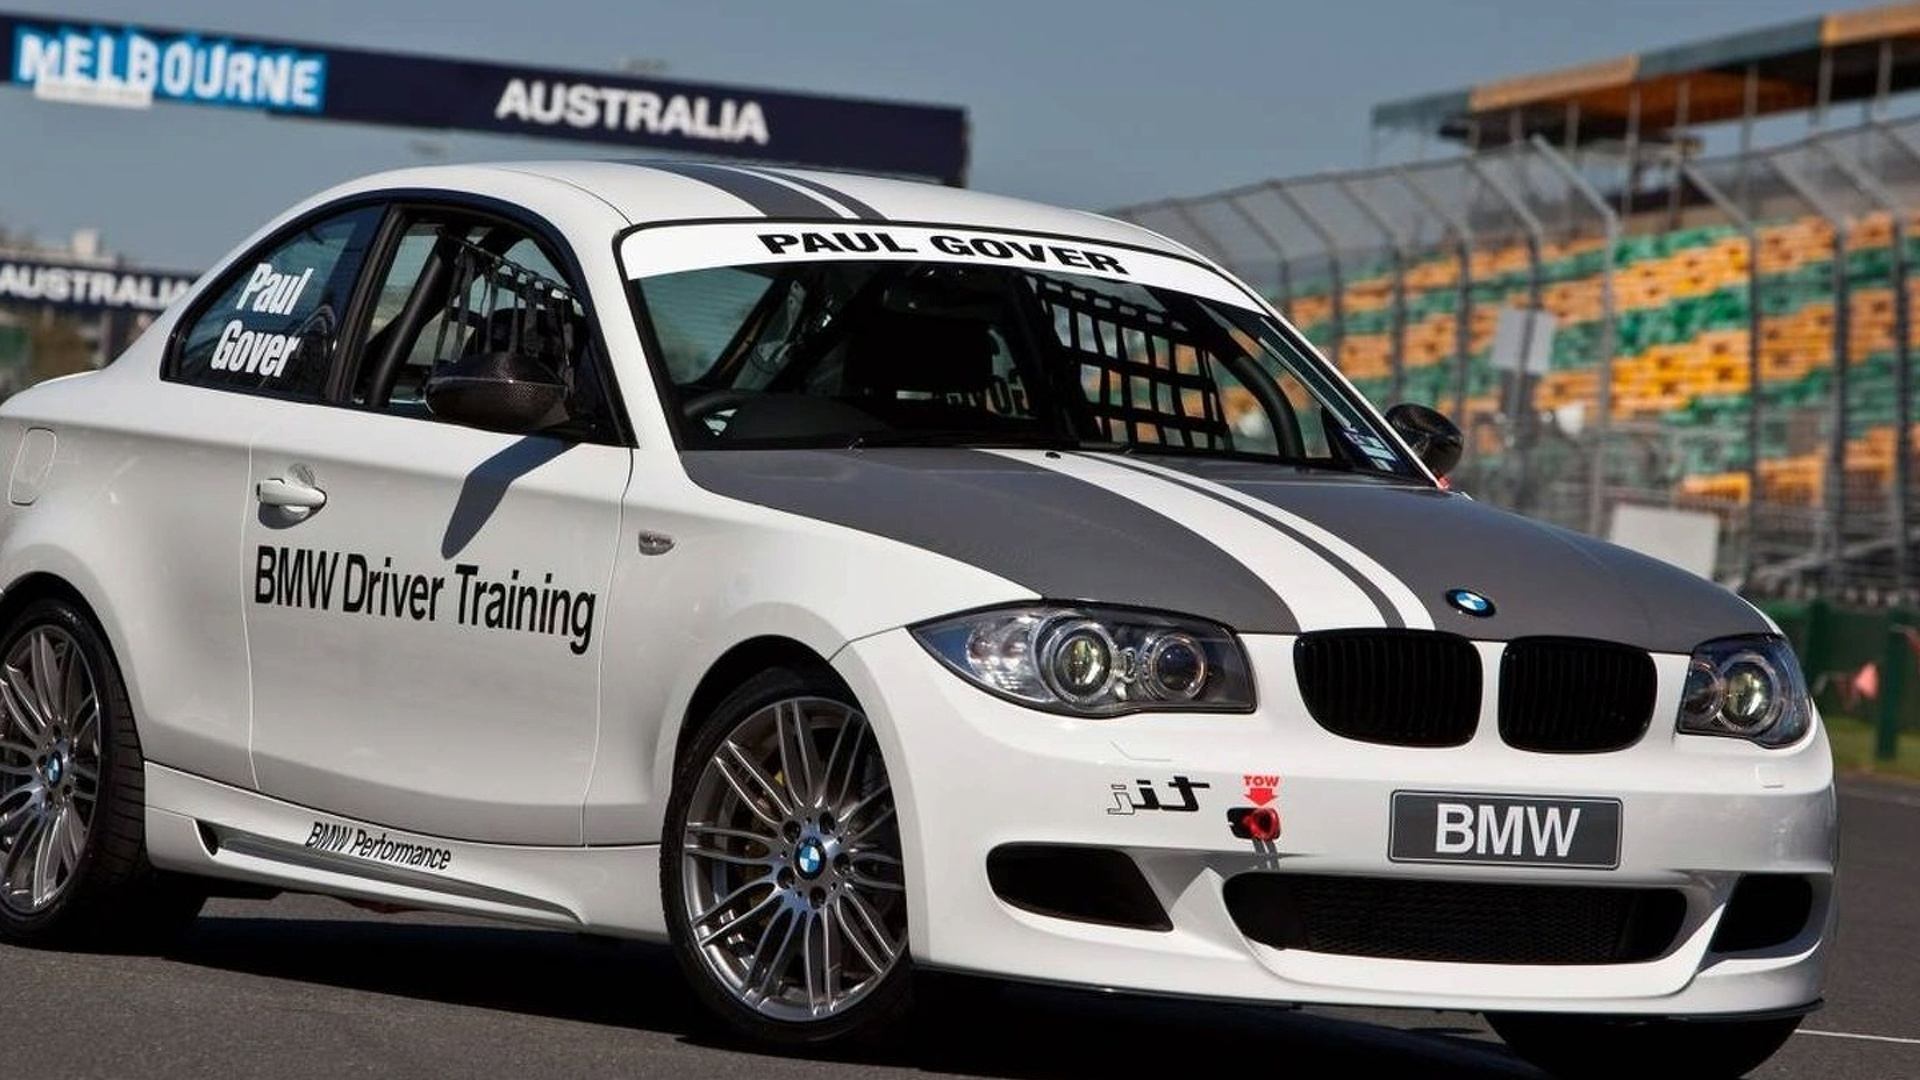 Bmw 135i Coupe To Race V8 Supercar And Sauber F1 Car At Australian Grand Prix